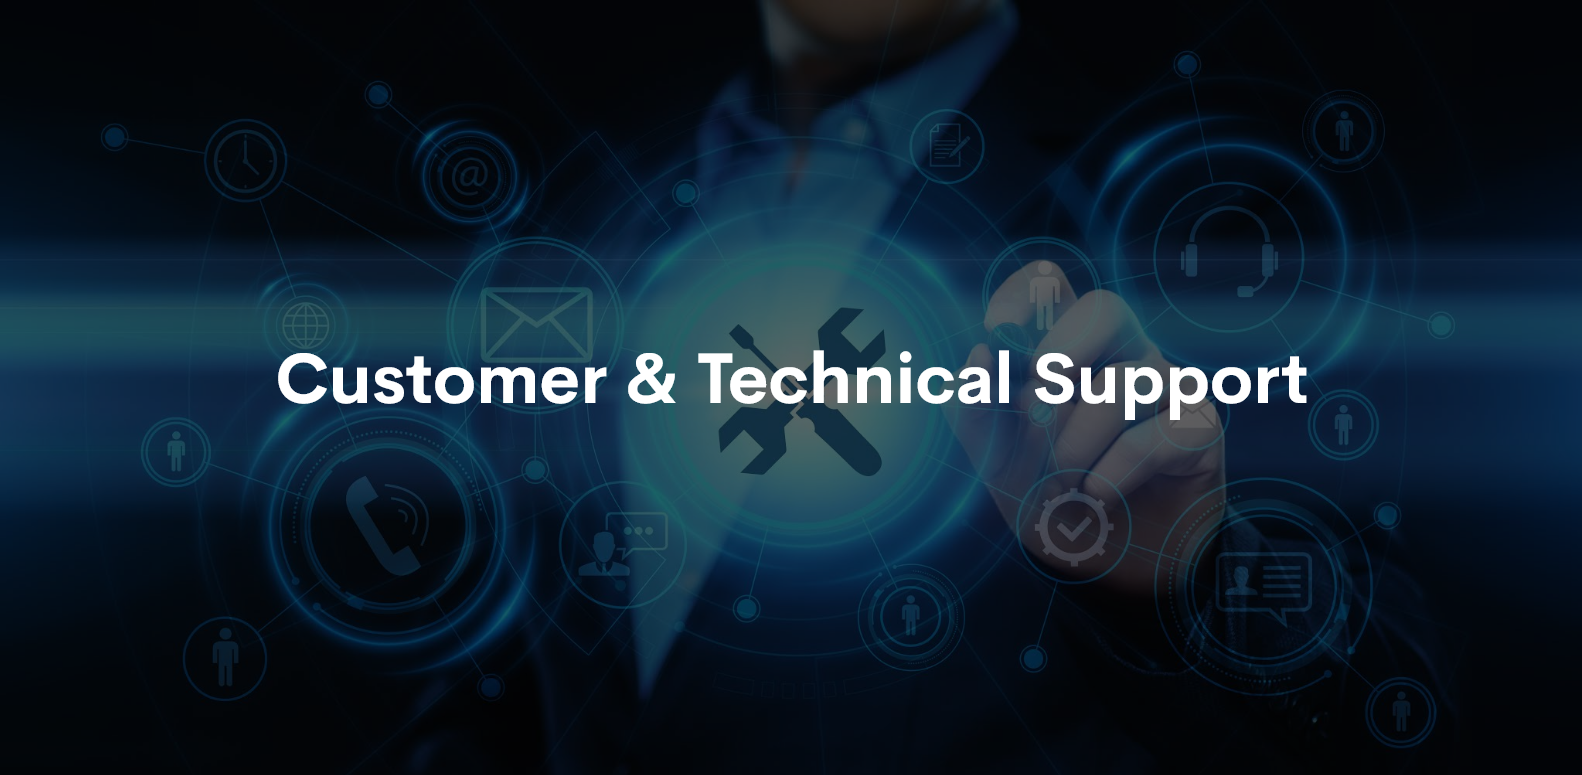 Customer and technical support